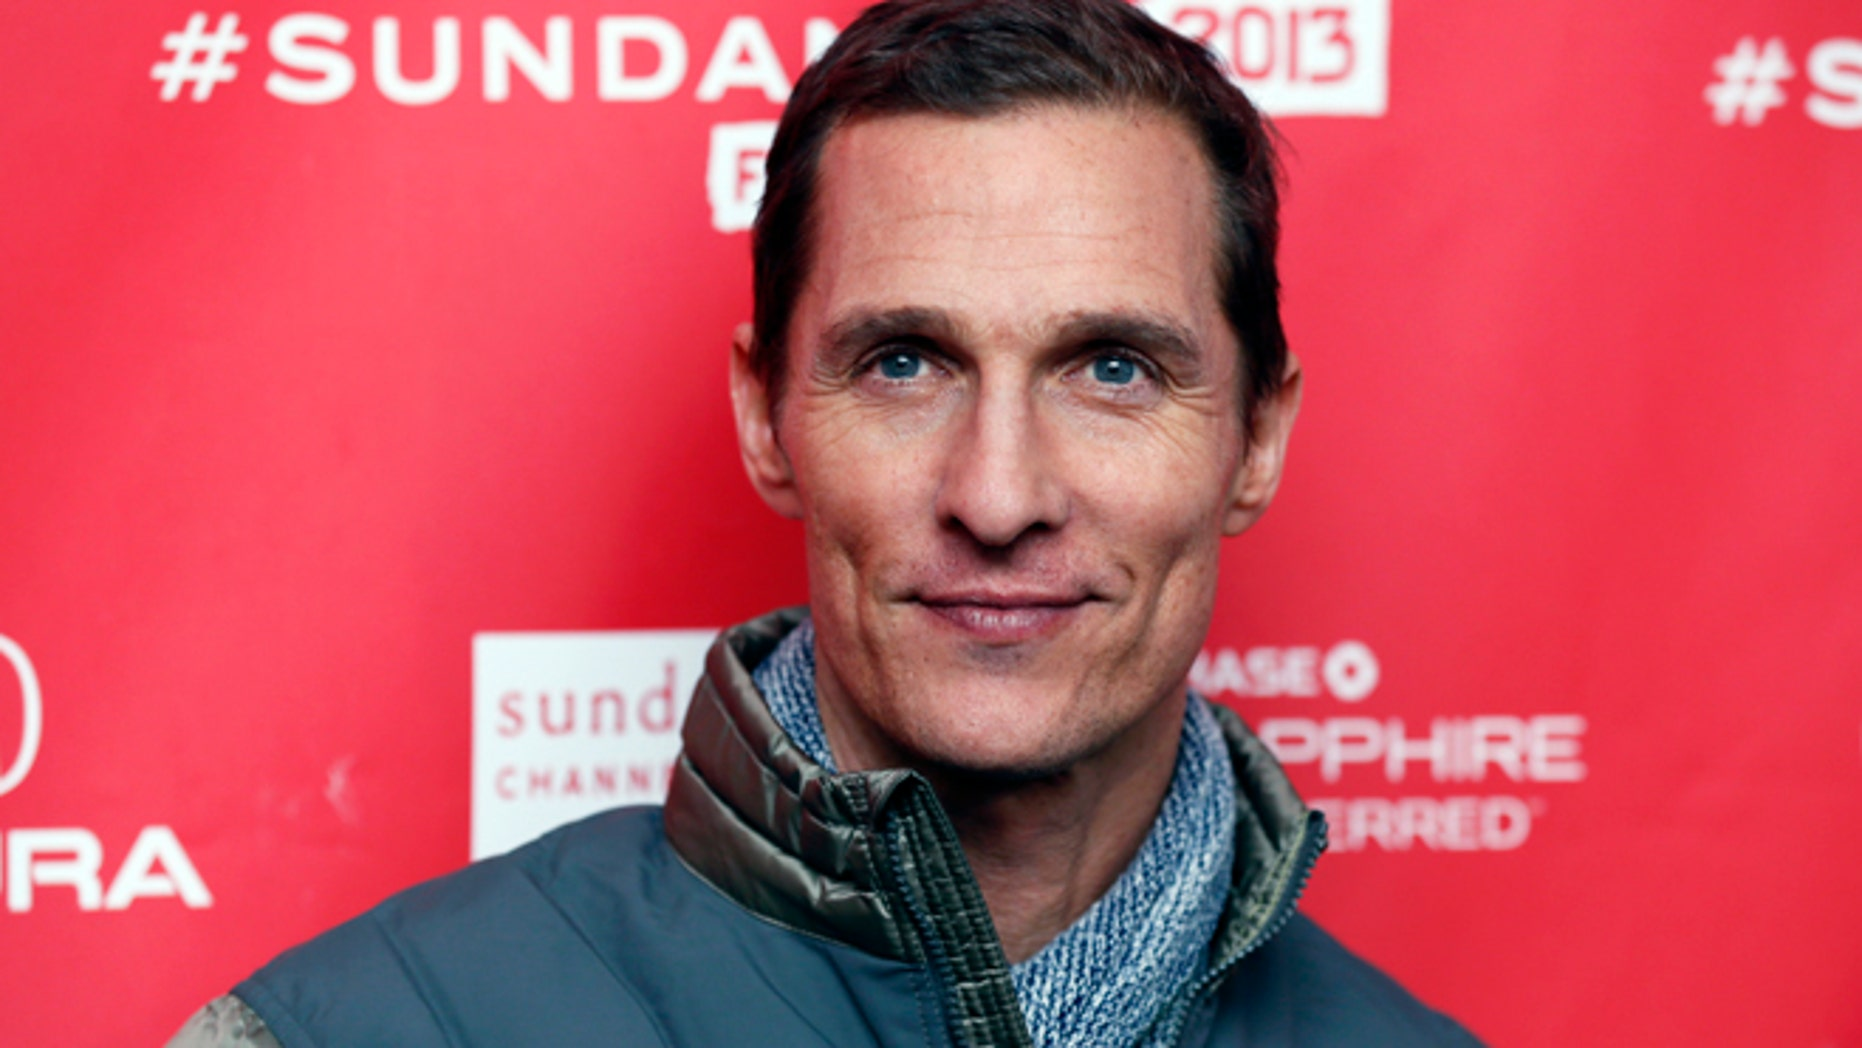 """Cast member Matthew McConaughey poses at the premiere of """"Mud"""" during the 2013 Sundance Film Festival on Saturday, Jan. 19, 2013 in Park City, Utah."""